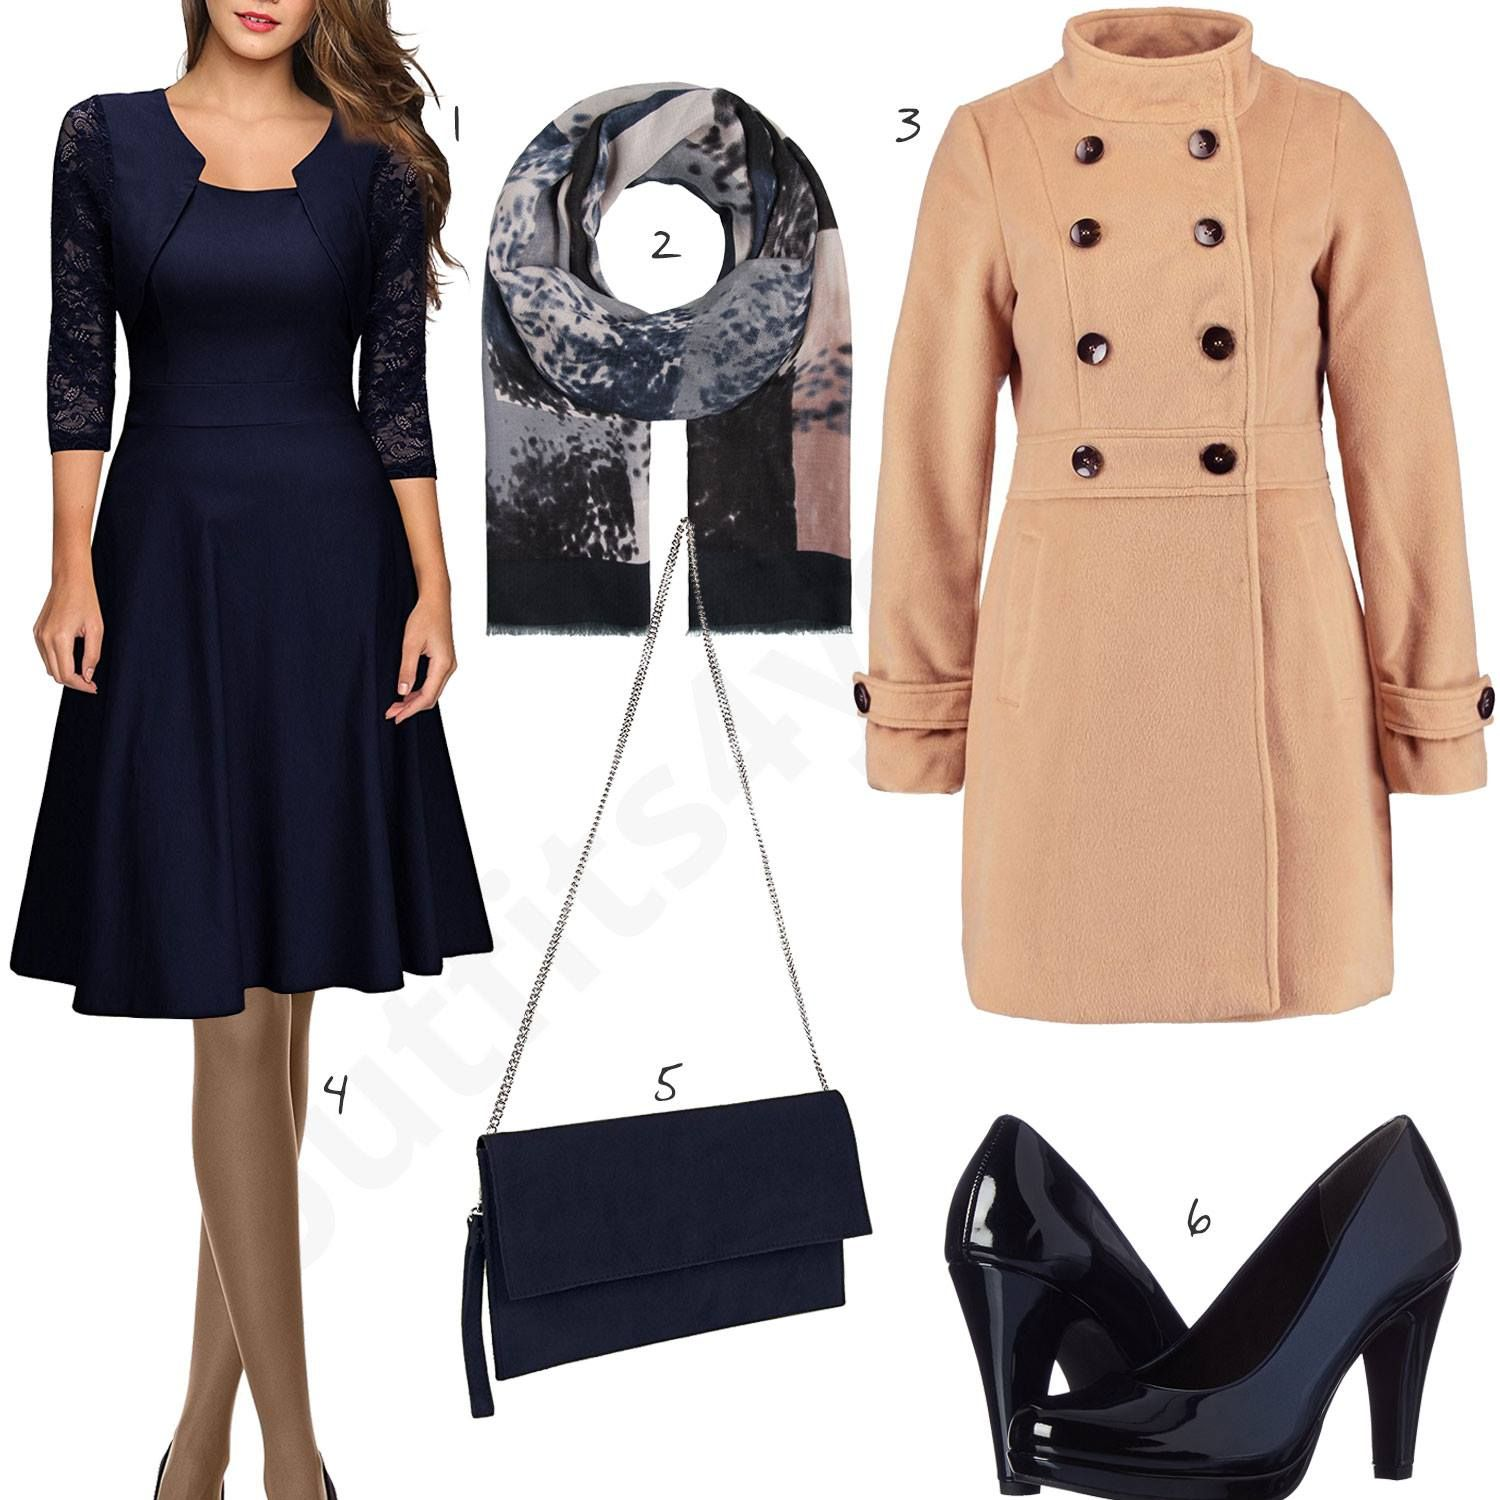 Dunkelblaues Kleid, Lack-Pumps, Clutch und warmer Mantel